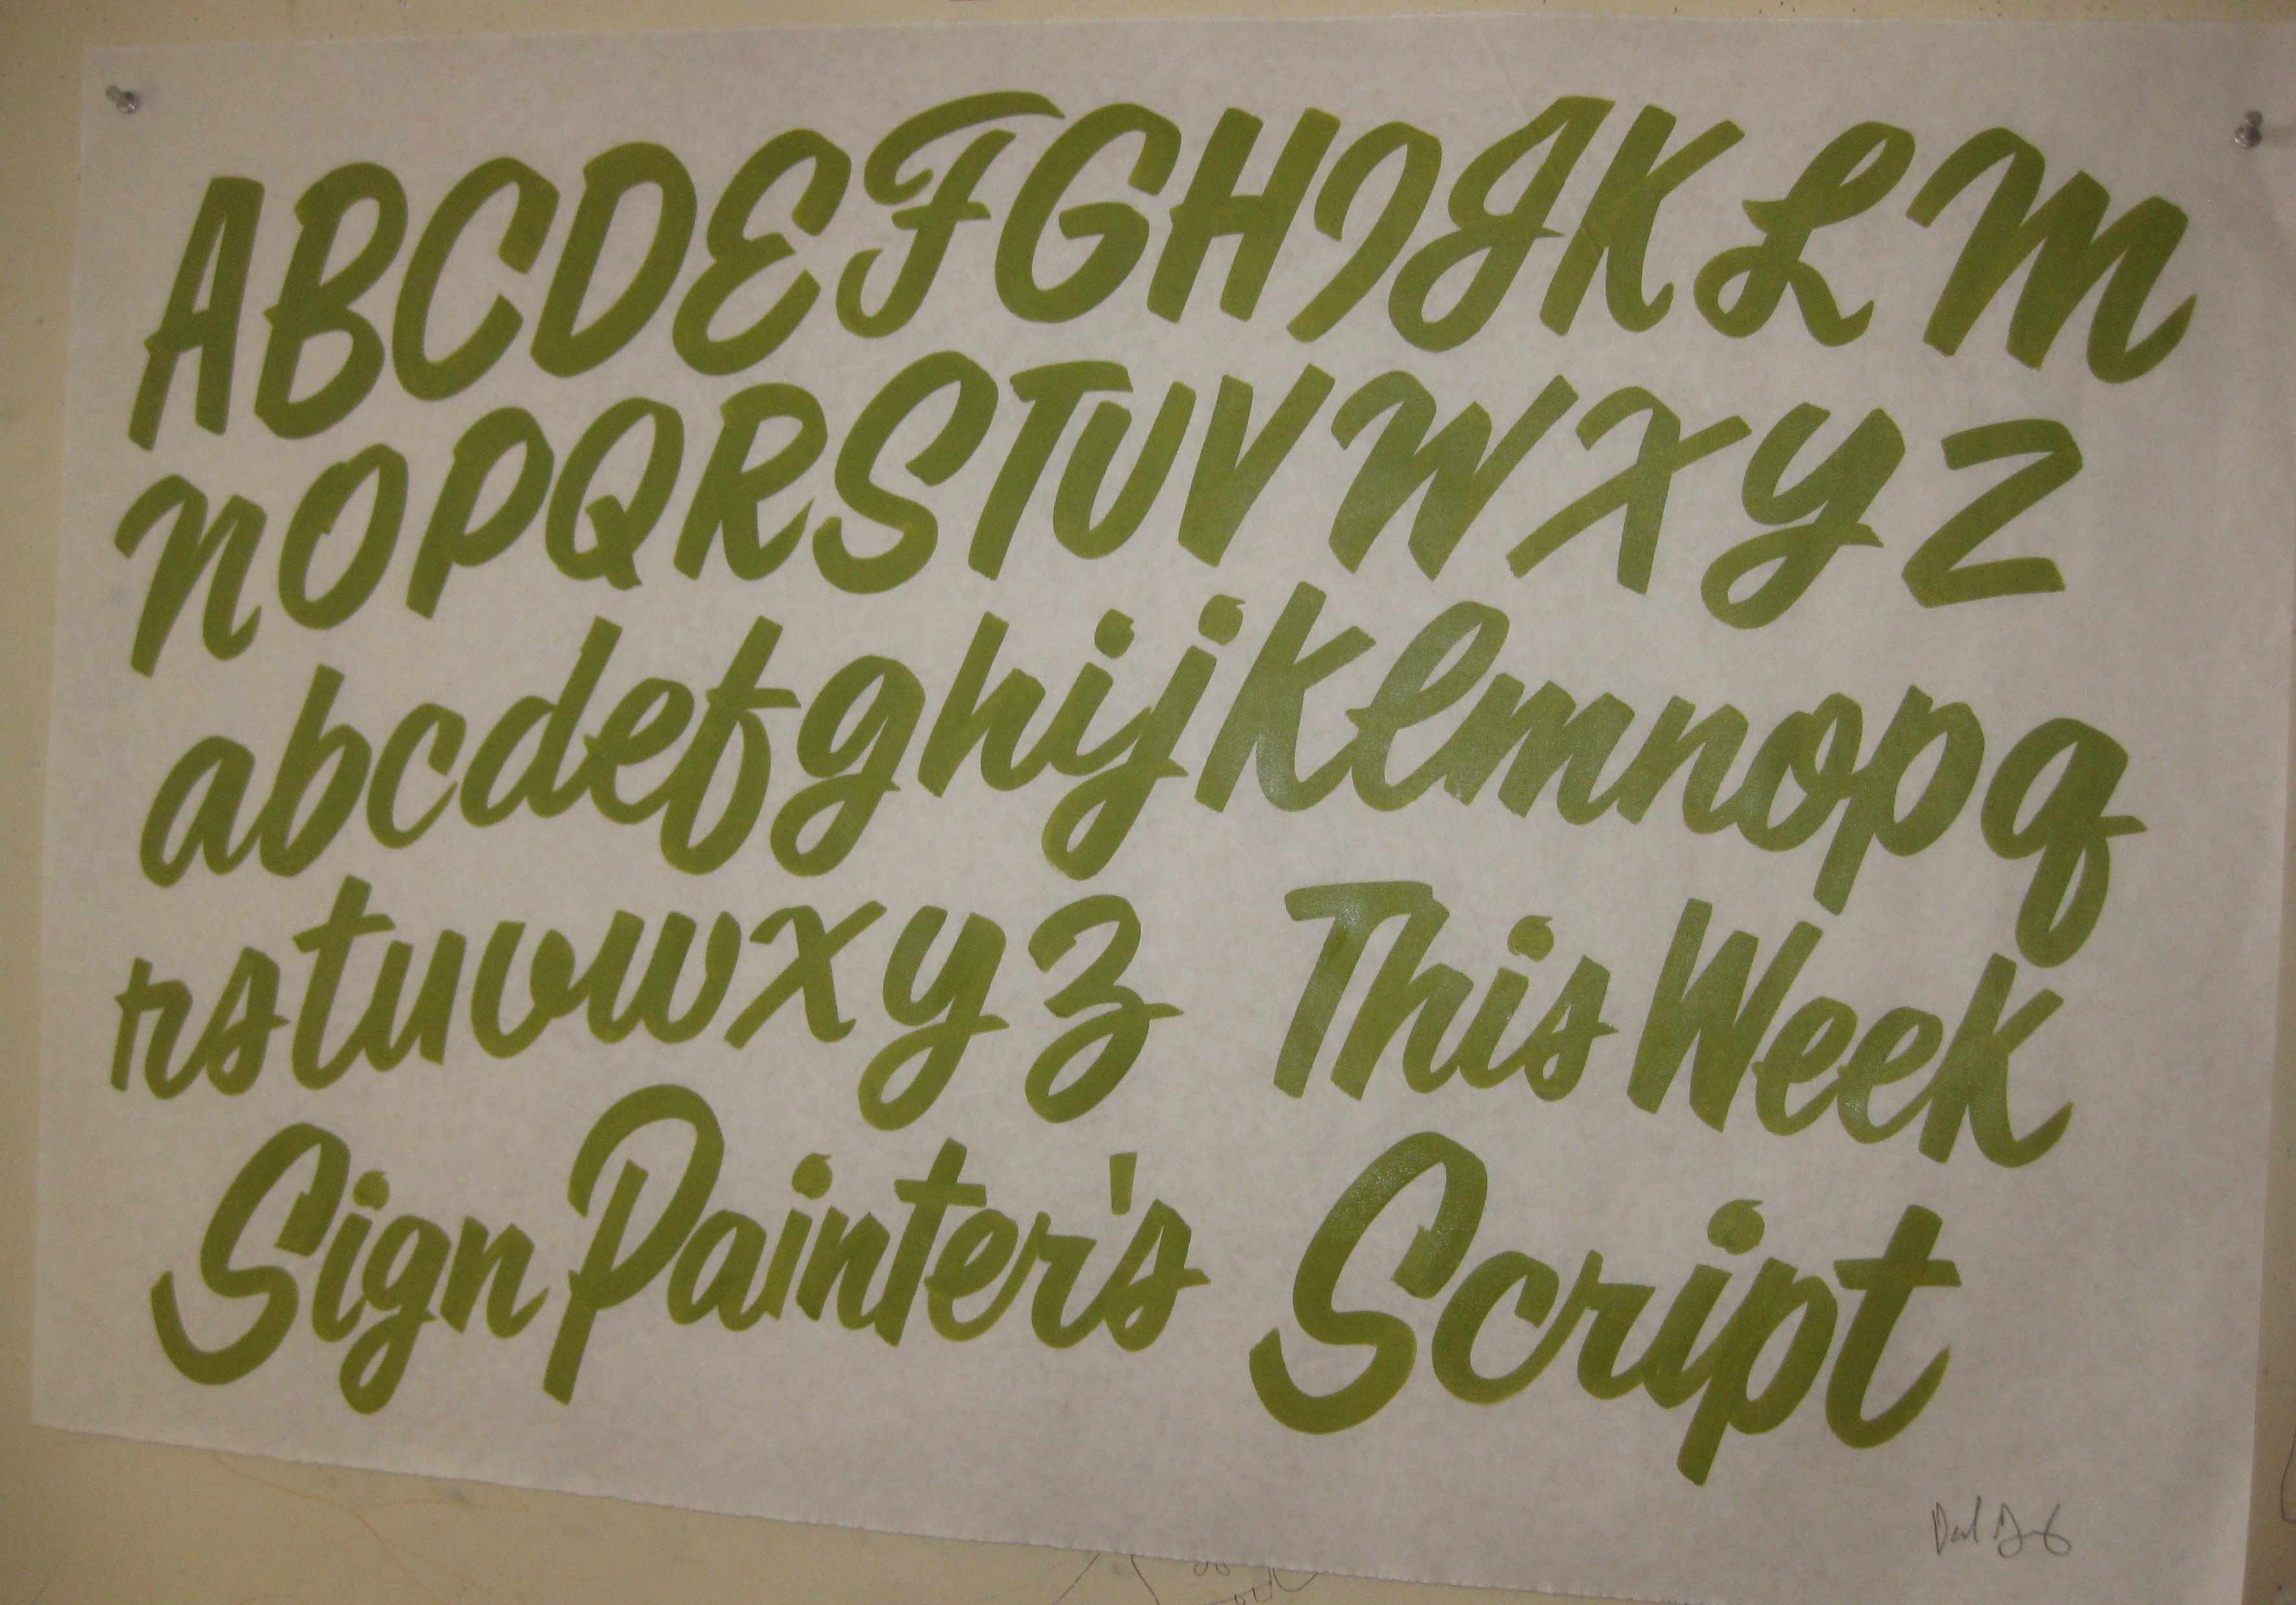 Pin By Malin Roghelia On Graffiti Brush Script Lettering Lettering Alphabet Sign Painting Lettering